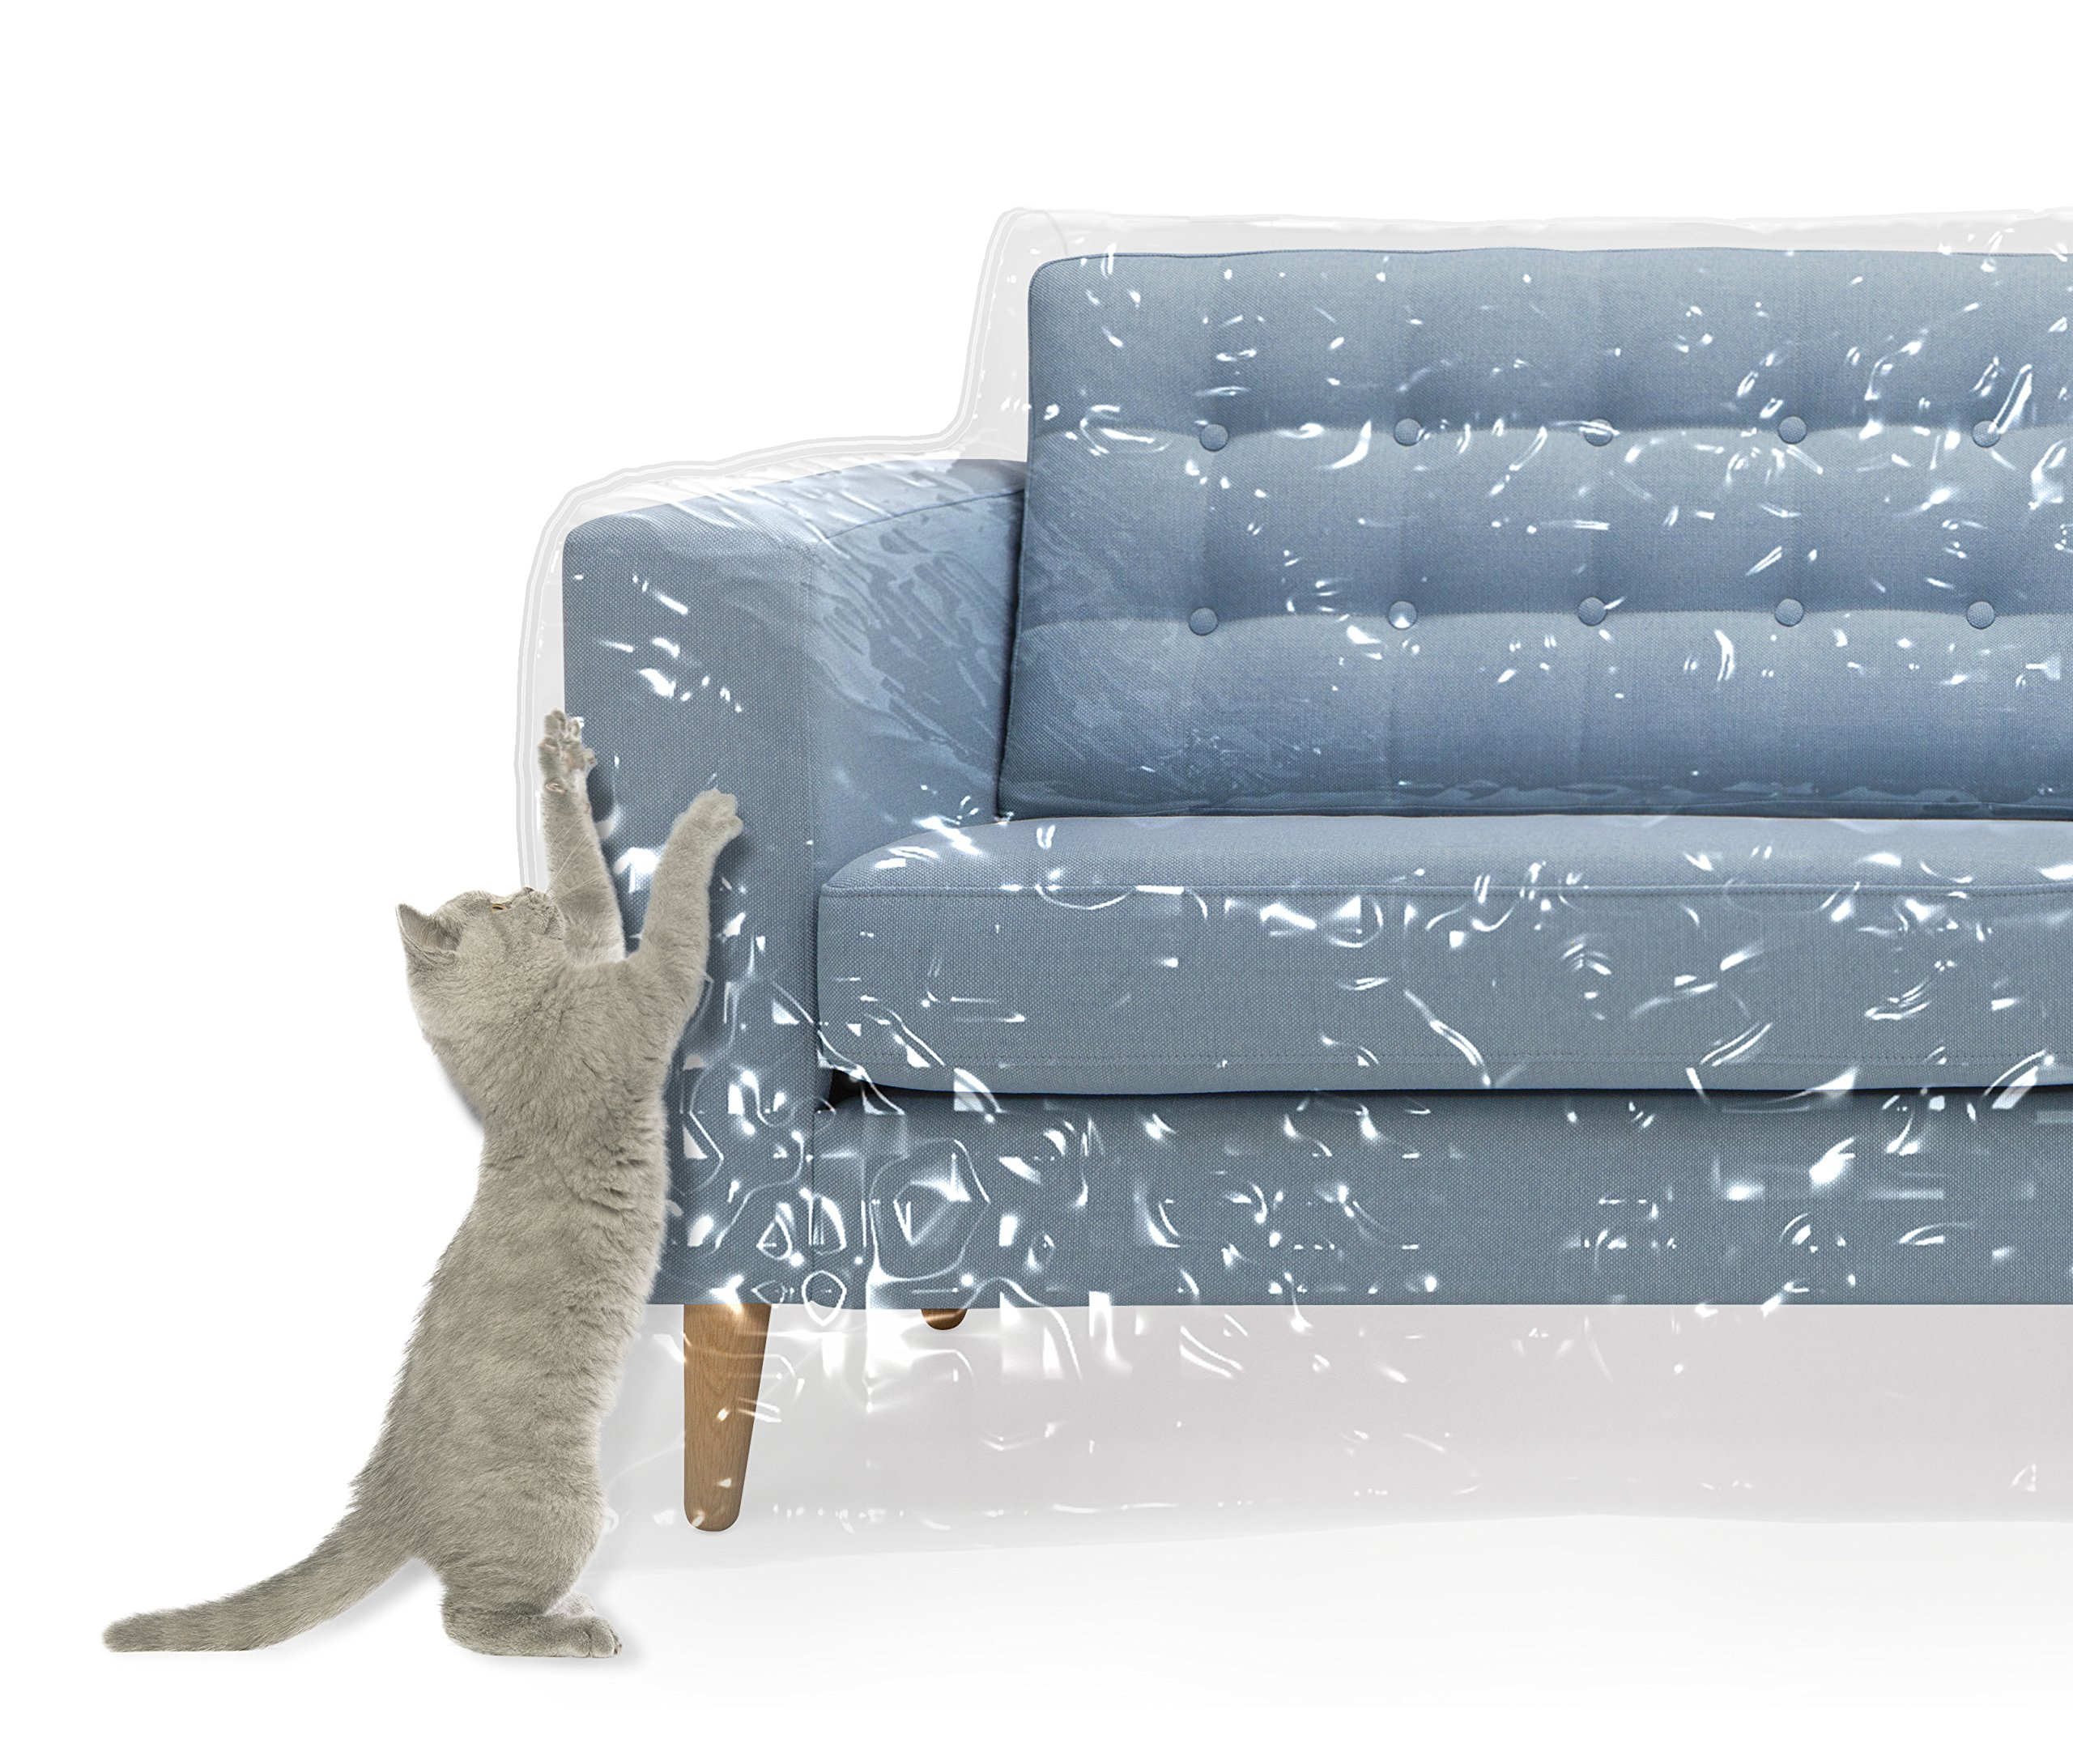 Plastic Couch Cover For Pets | Cat Scratching Protector Clawing Deterrent | Heavy Duty Water Resistant Thick Clear Vinyl | Sofa Slipover For Moving And Long Term Storage by Kitty Cat Protector